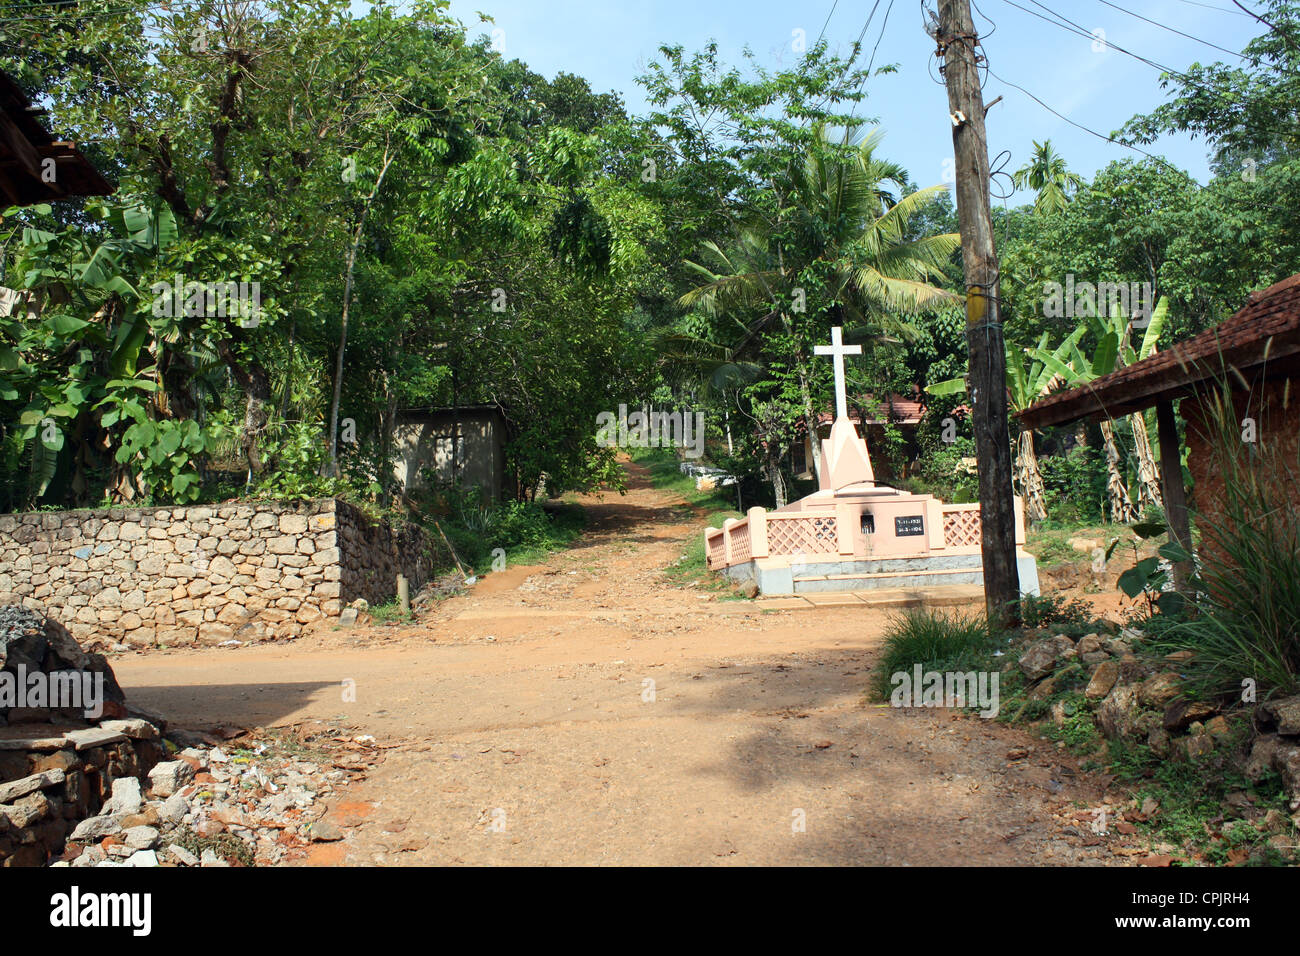 An Old Cross in Vattakkav village Konni,Keralam, India, build in 1913 - Stock Image